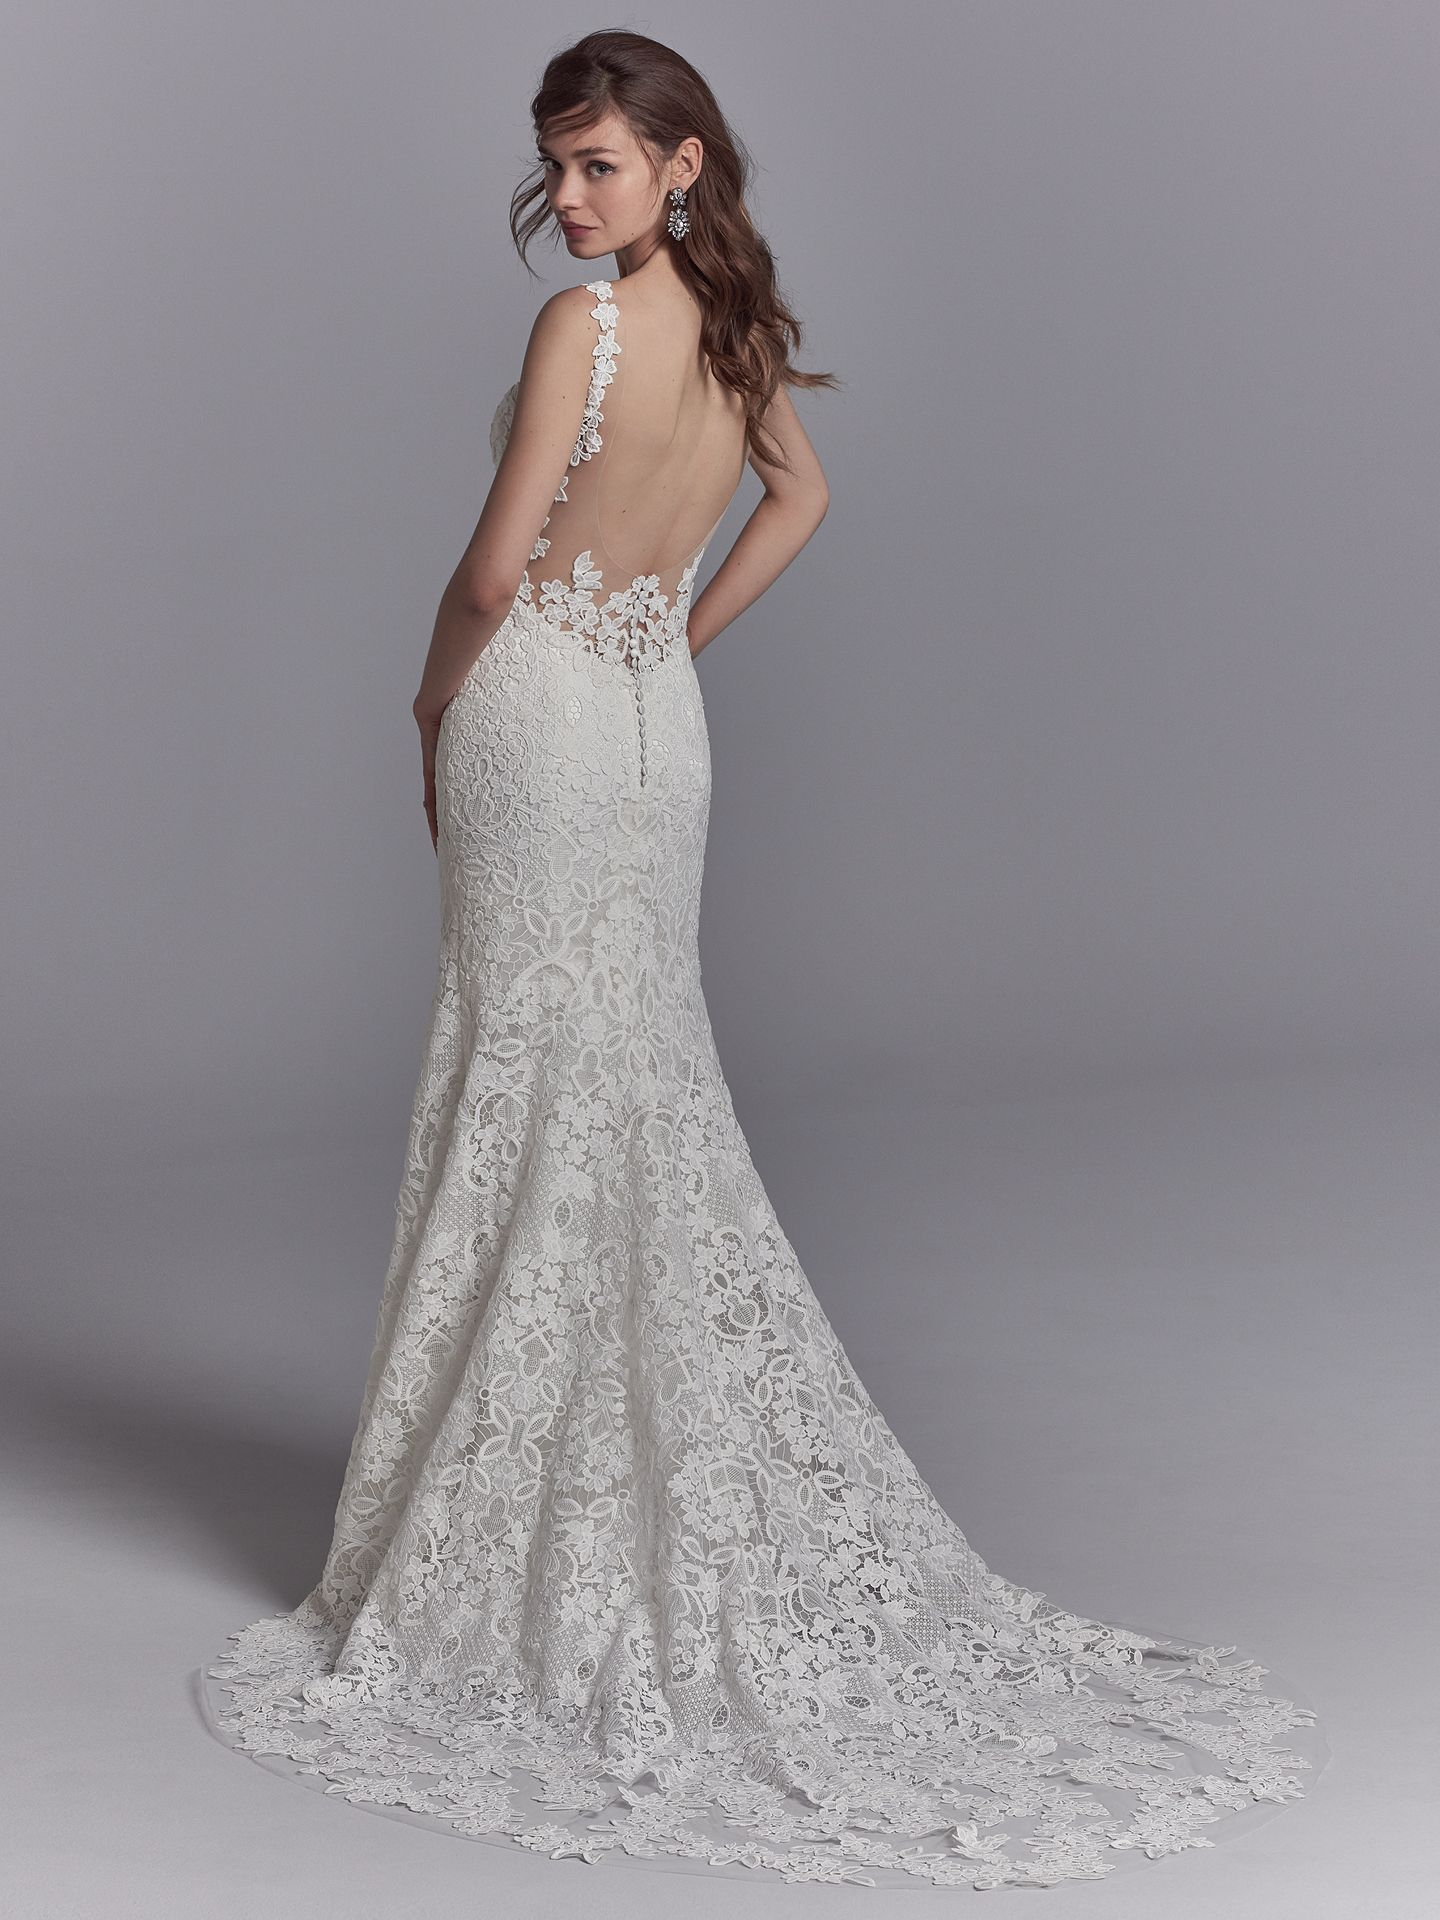 Best Accessories for Your Boho Wedding Dress - Presca boho wedding dress by Sottero and Midgley can be paired with a statement earrings